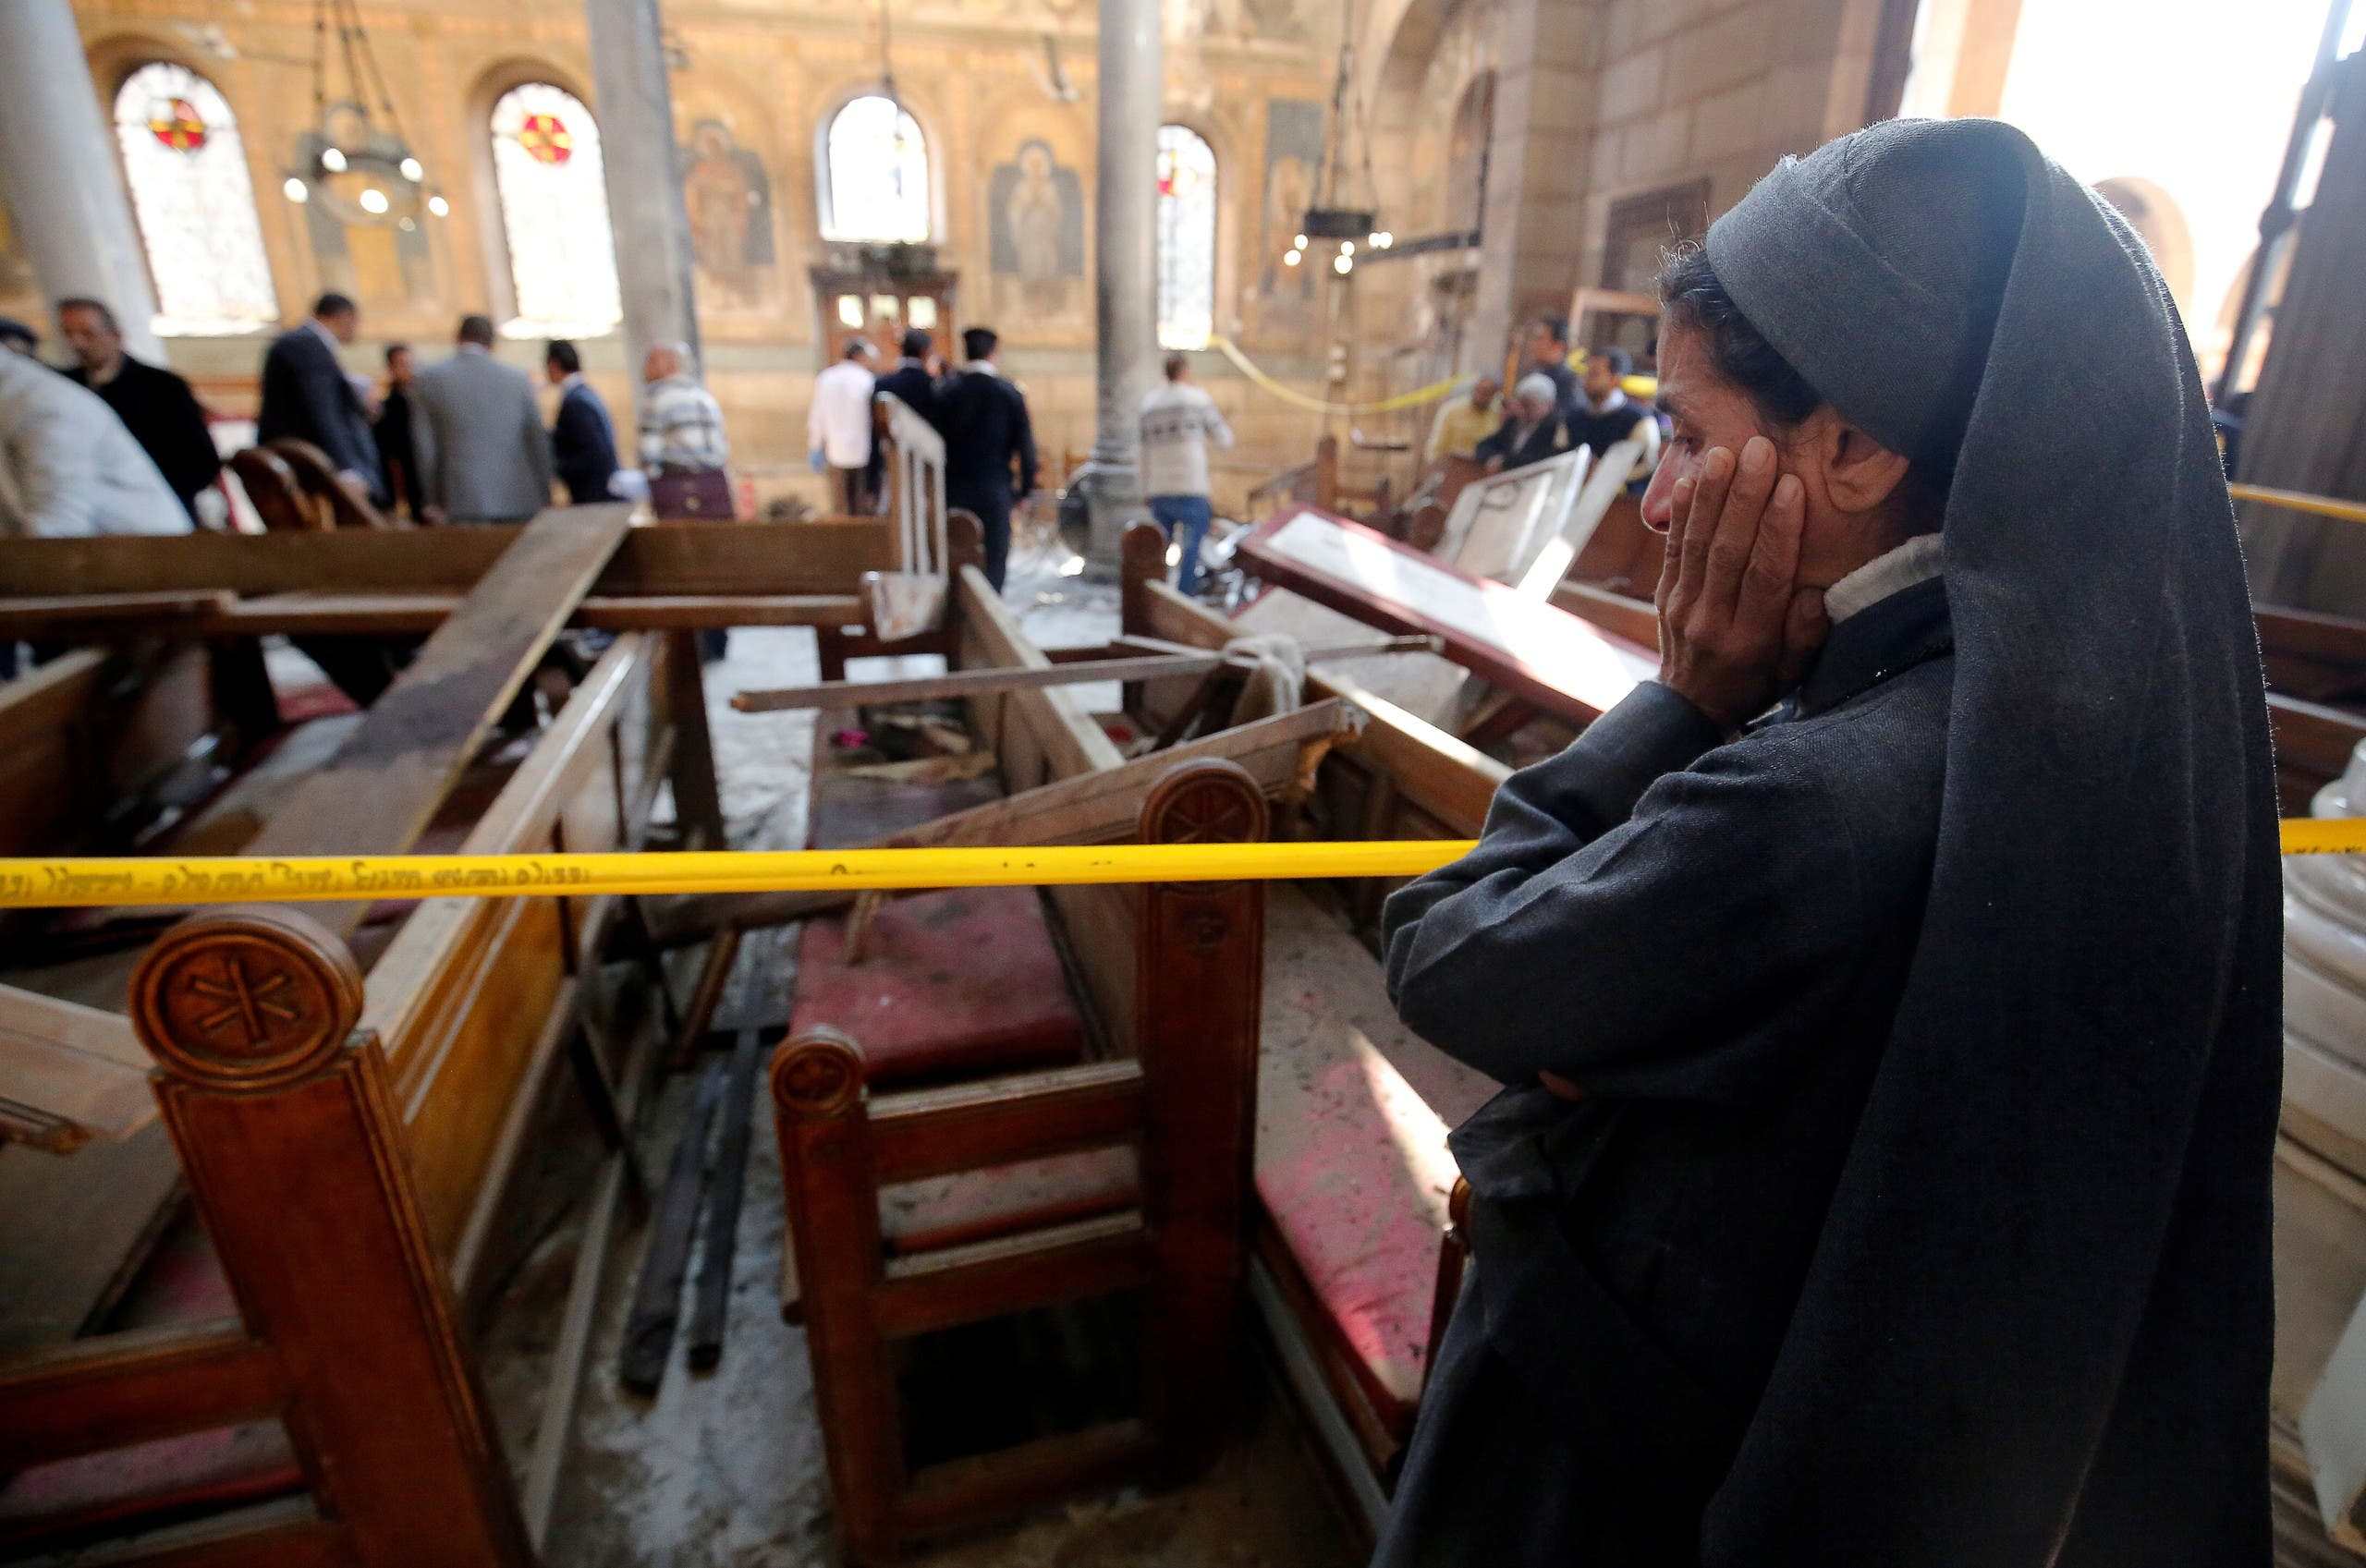 A nun cries as she stands at the scene inside Cairo's Coptic cathedral, following a bombing, in Egypt December 11, 2016. REUTERS